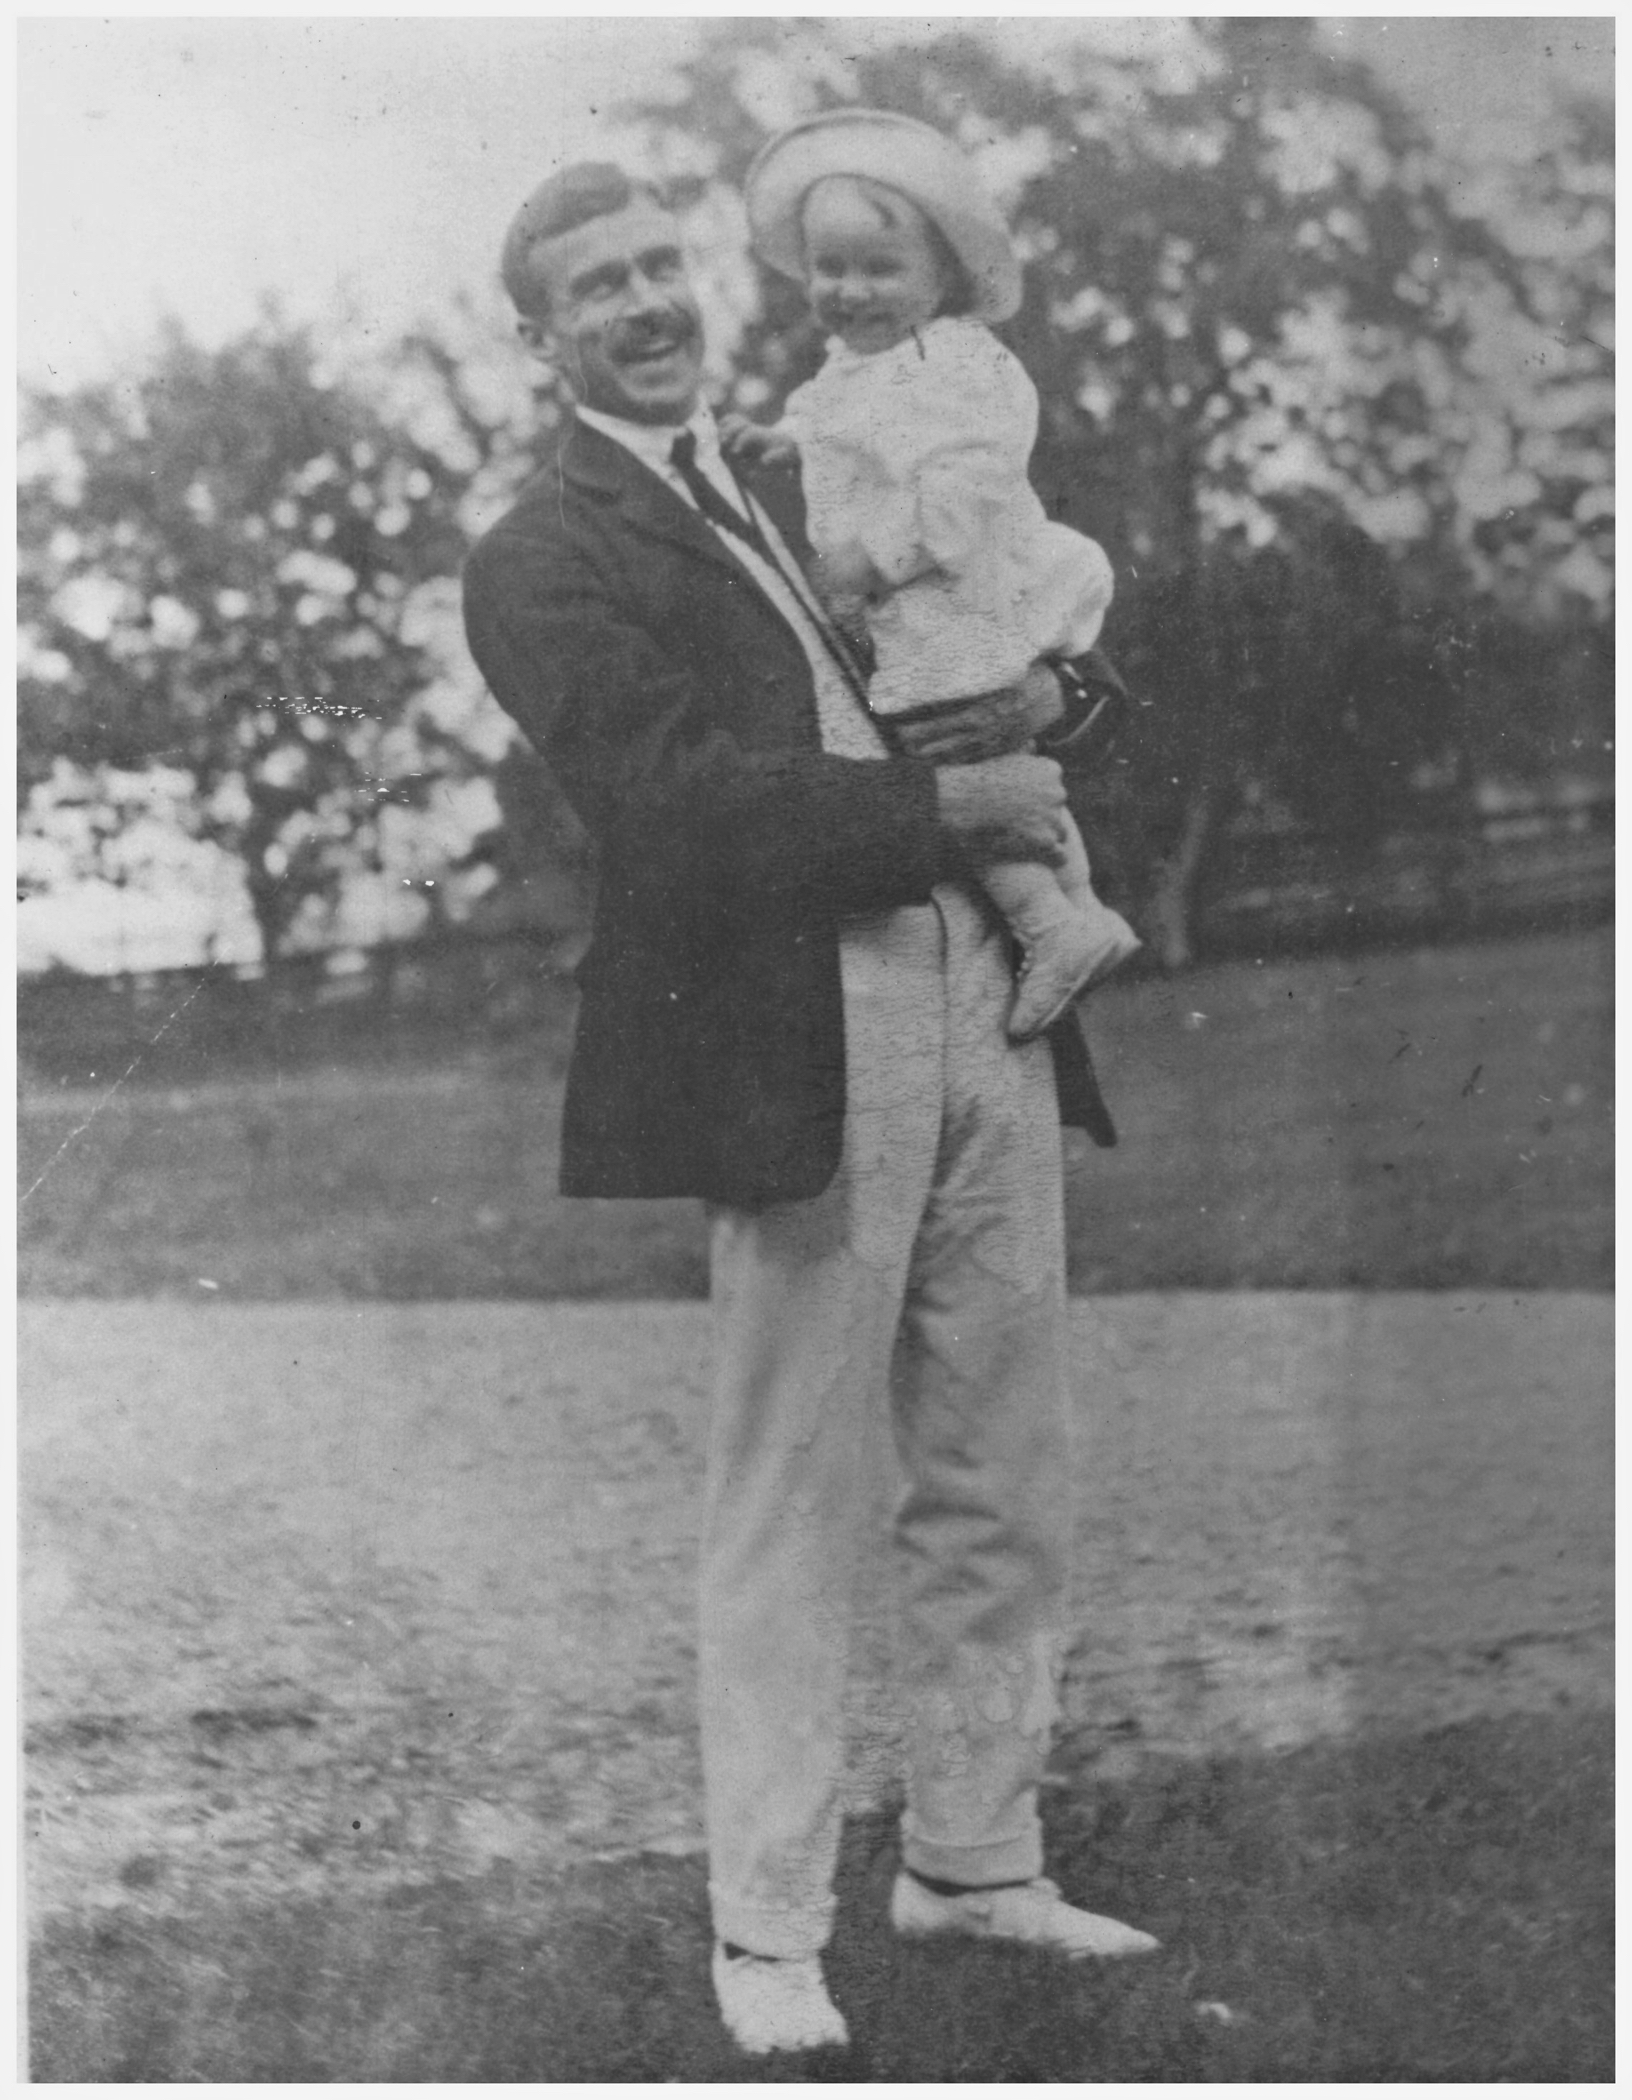 Black and white photograph of Kenneth Molson, a tall man smiling and holding a toddler, also smiling, posing outdoors with lawn and trees in the background.